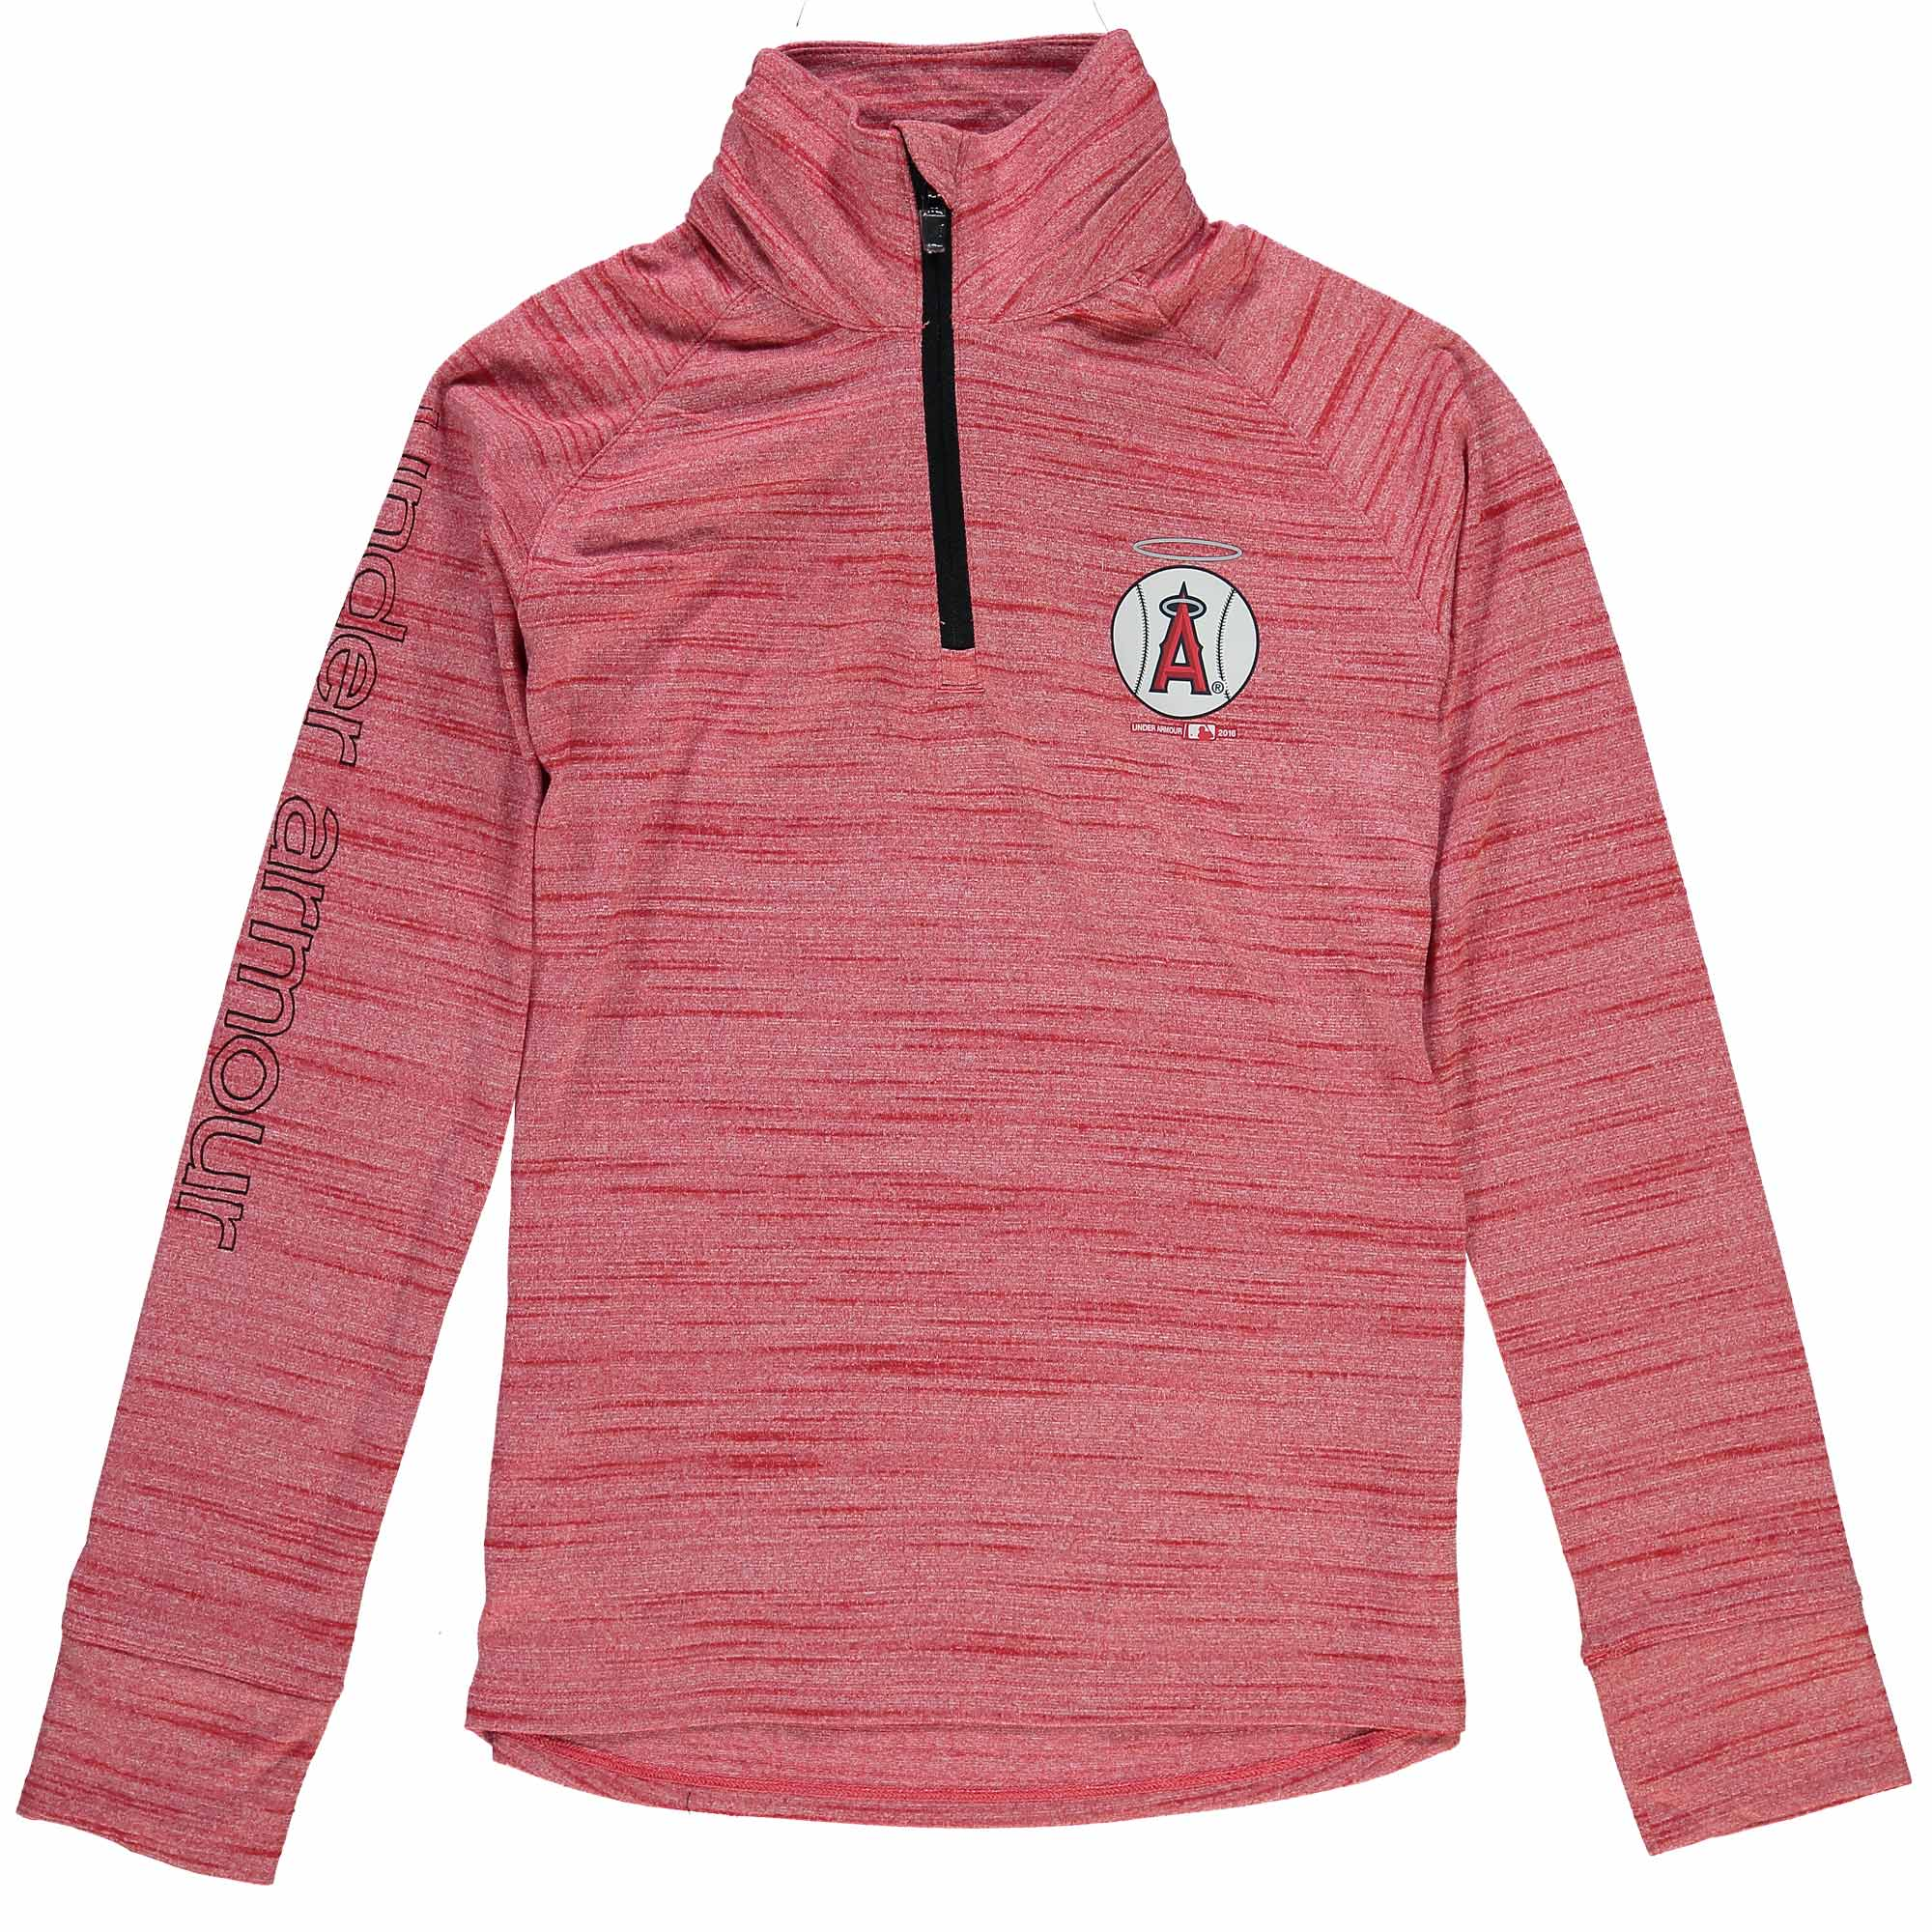 Los Angeles Angels Under Armour Youth Girls Space Tech Quarter-Zip Performance Jacket - Red